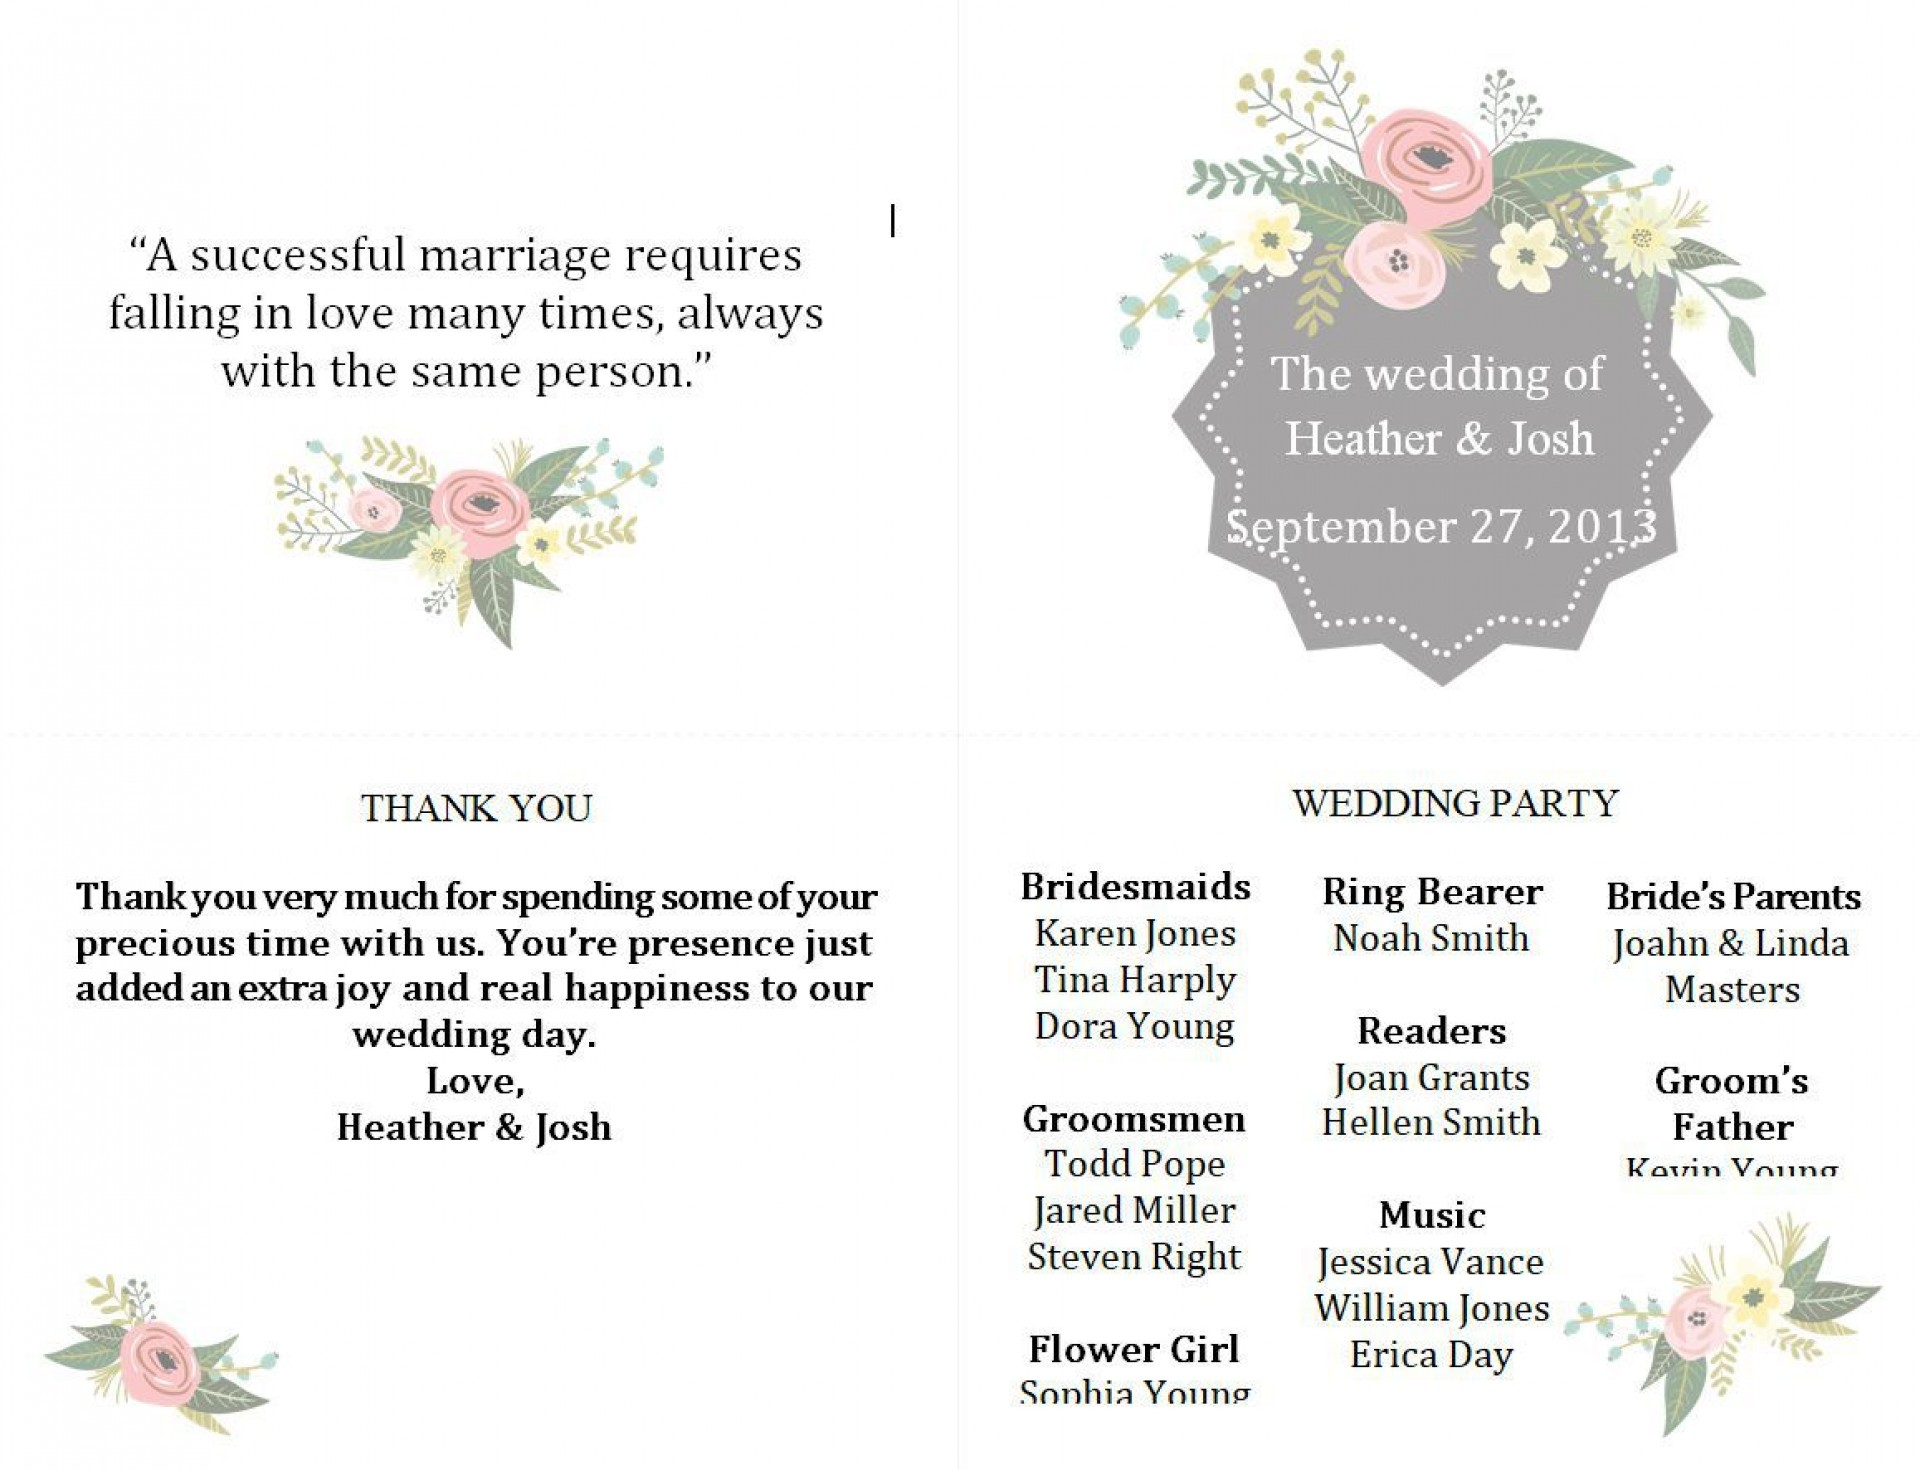 003 Exceptional Wedding Program Template Free Download Example  Downloadable Fan Microsoft Word Printable Editable1920